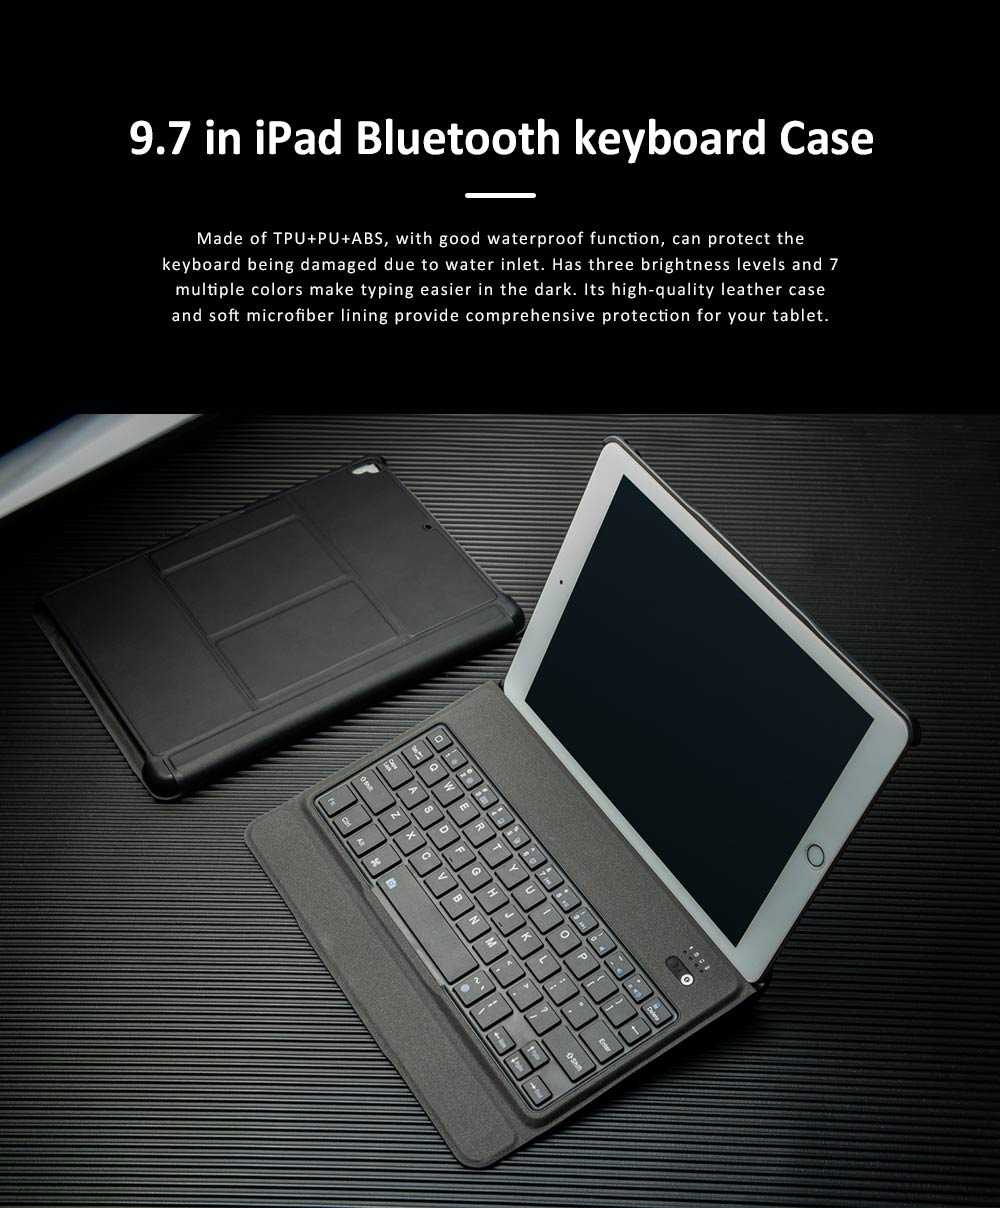 Bluetooth Keyboard Magnetic Flip Case for iPad Air 1, iPad Air 2, iPad Pro 9.7, iPad 9.7 2018, iPad 9.7 2017, Ultra- Thin Split Type New iPad 9.7 Colorful Backlit External Bluetooth Protective Cove 0